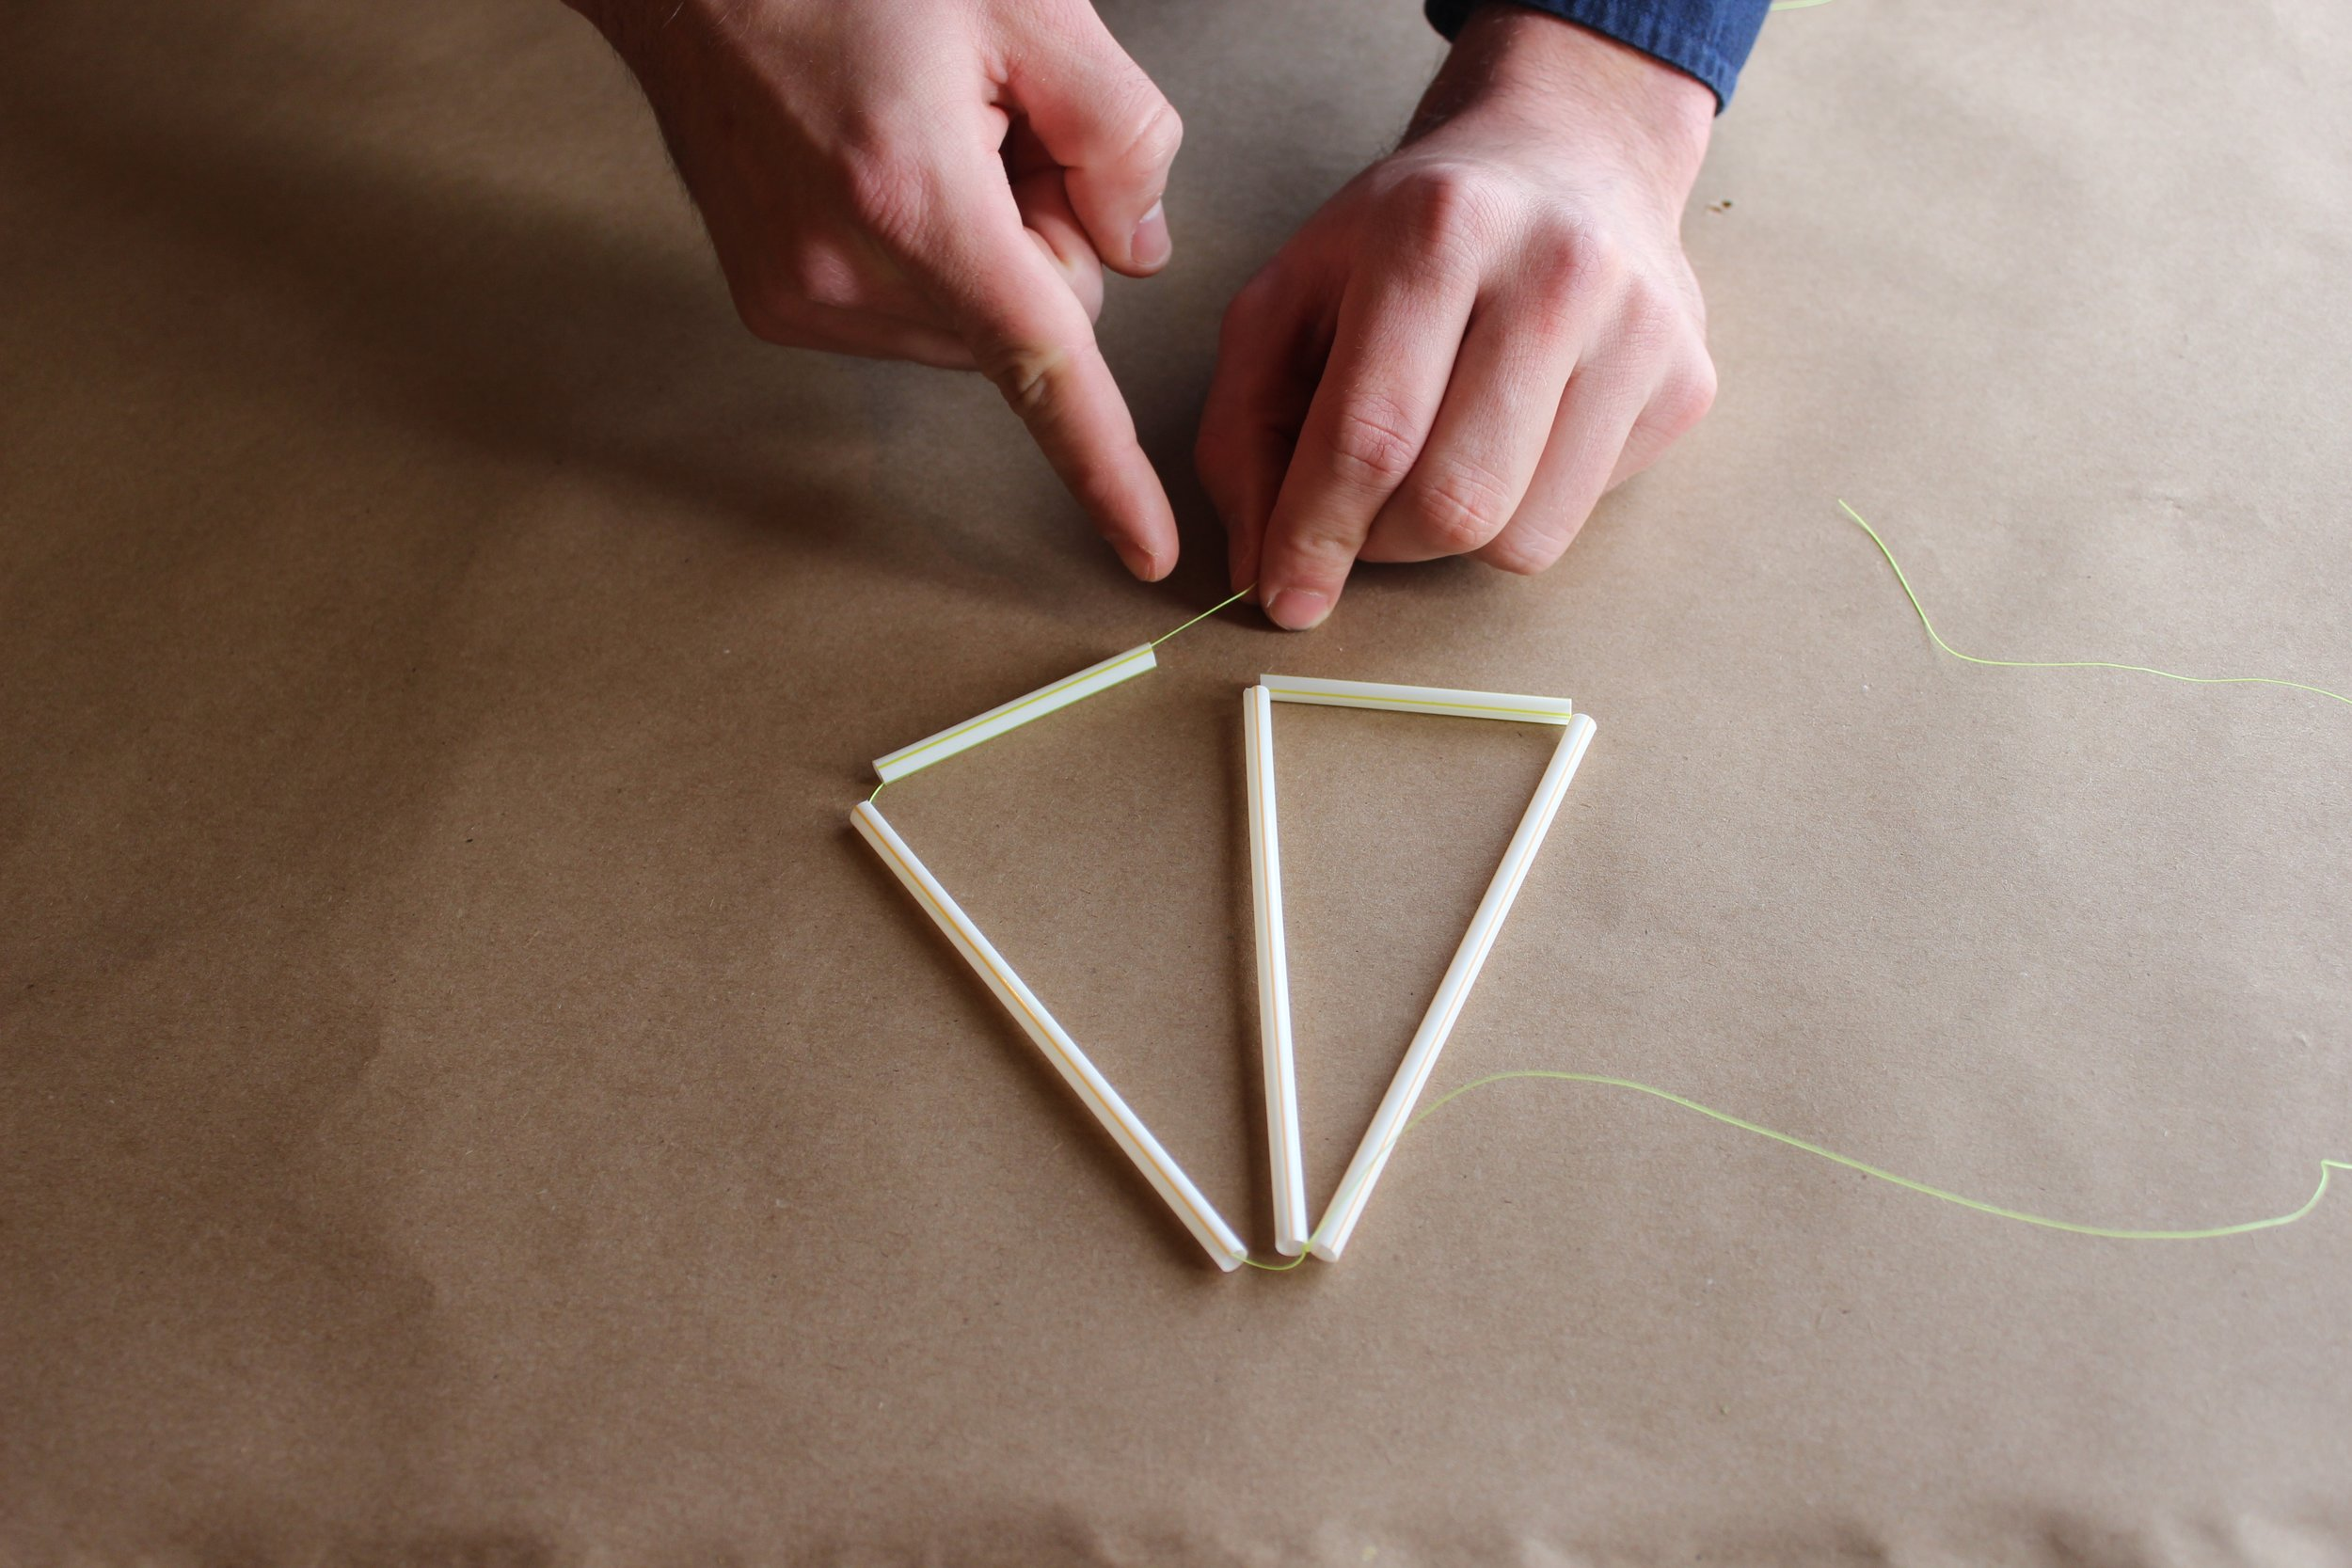 Step 4.) Thread the piece on your right through a 2.5 inch straw to form a triangle and tie it tightly at the bottom.